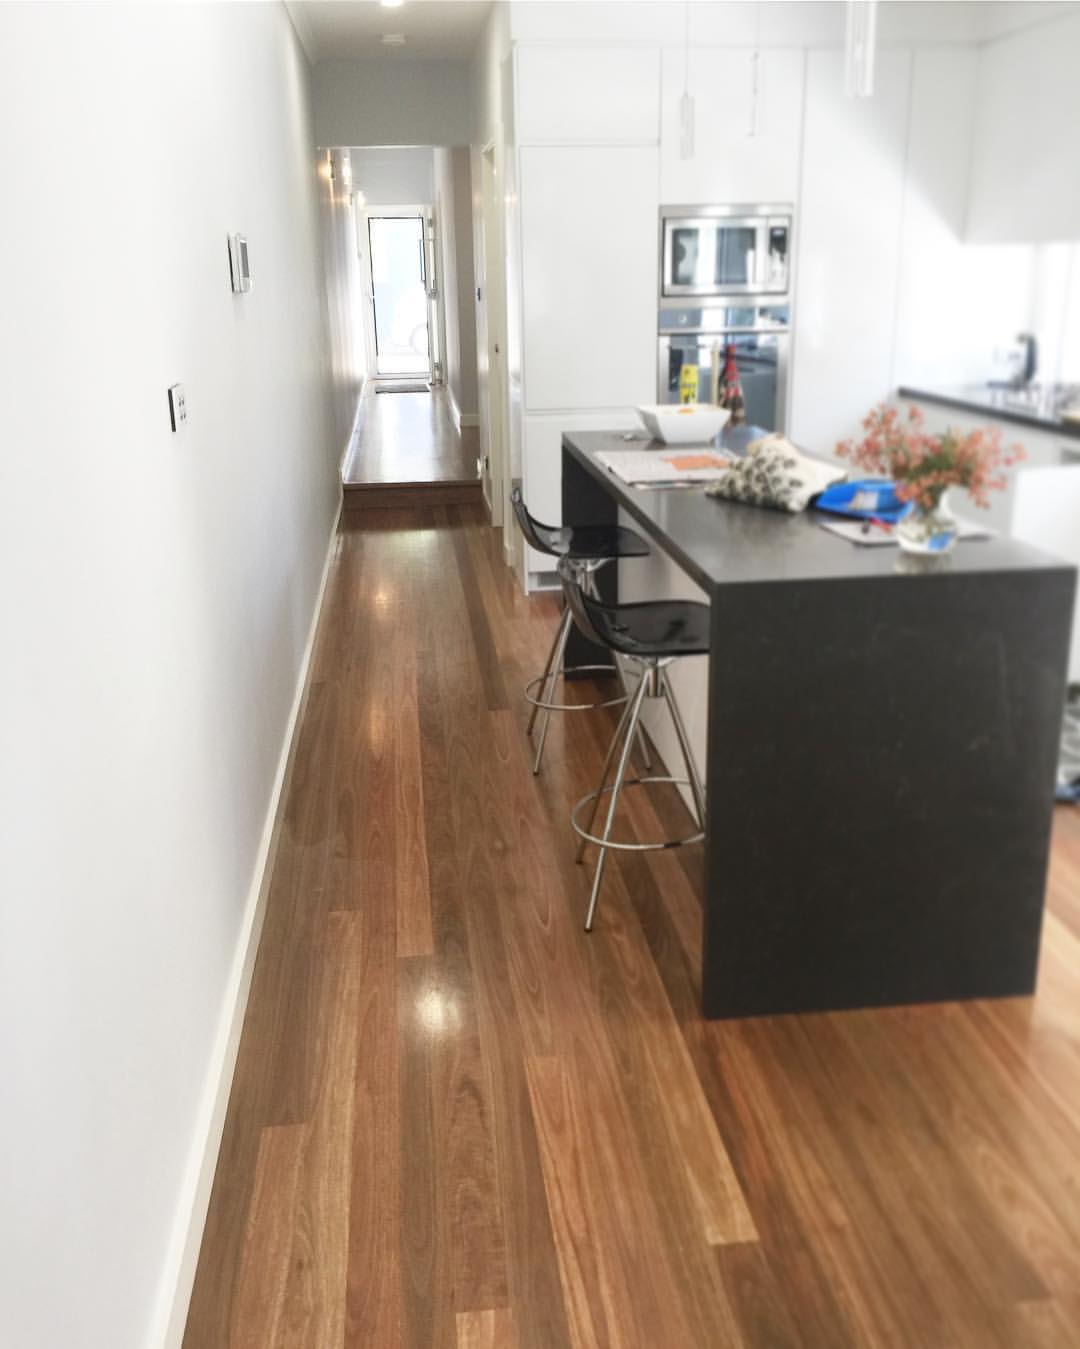 spottedgum-australian-hardwood-timber-flooring-timberfloors-timberflooring-renovations-architecture-design-interiordesign-building-newbuild-